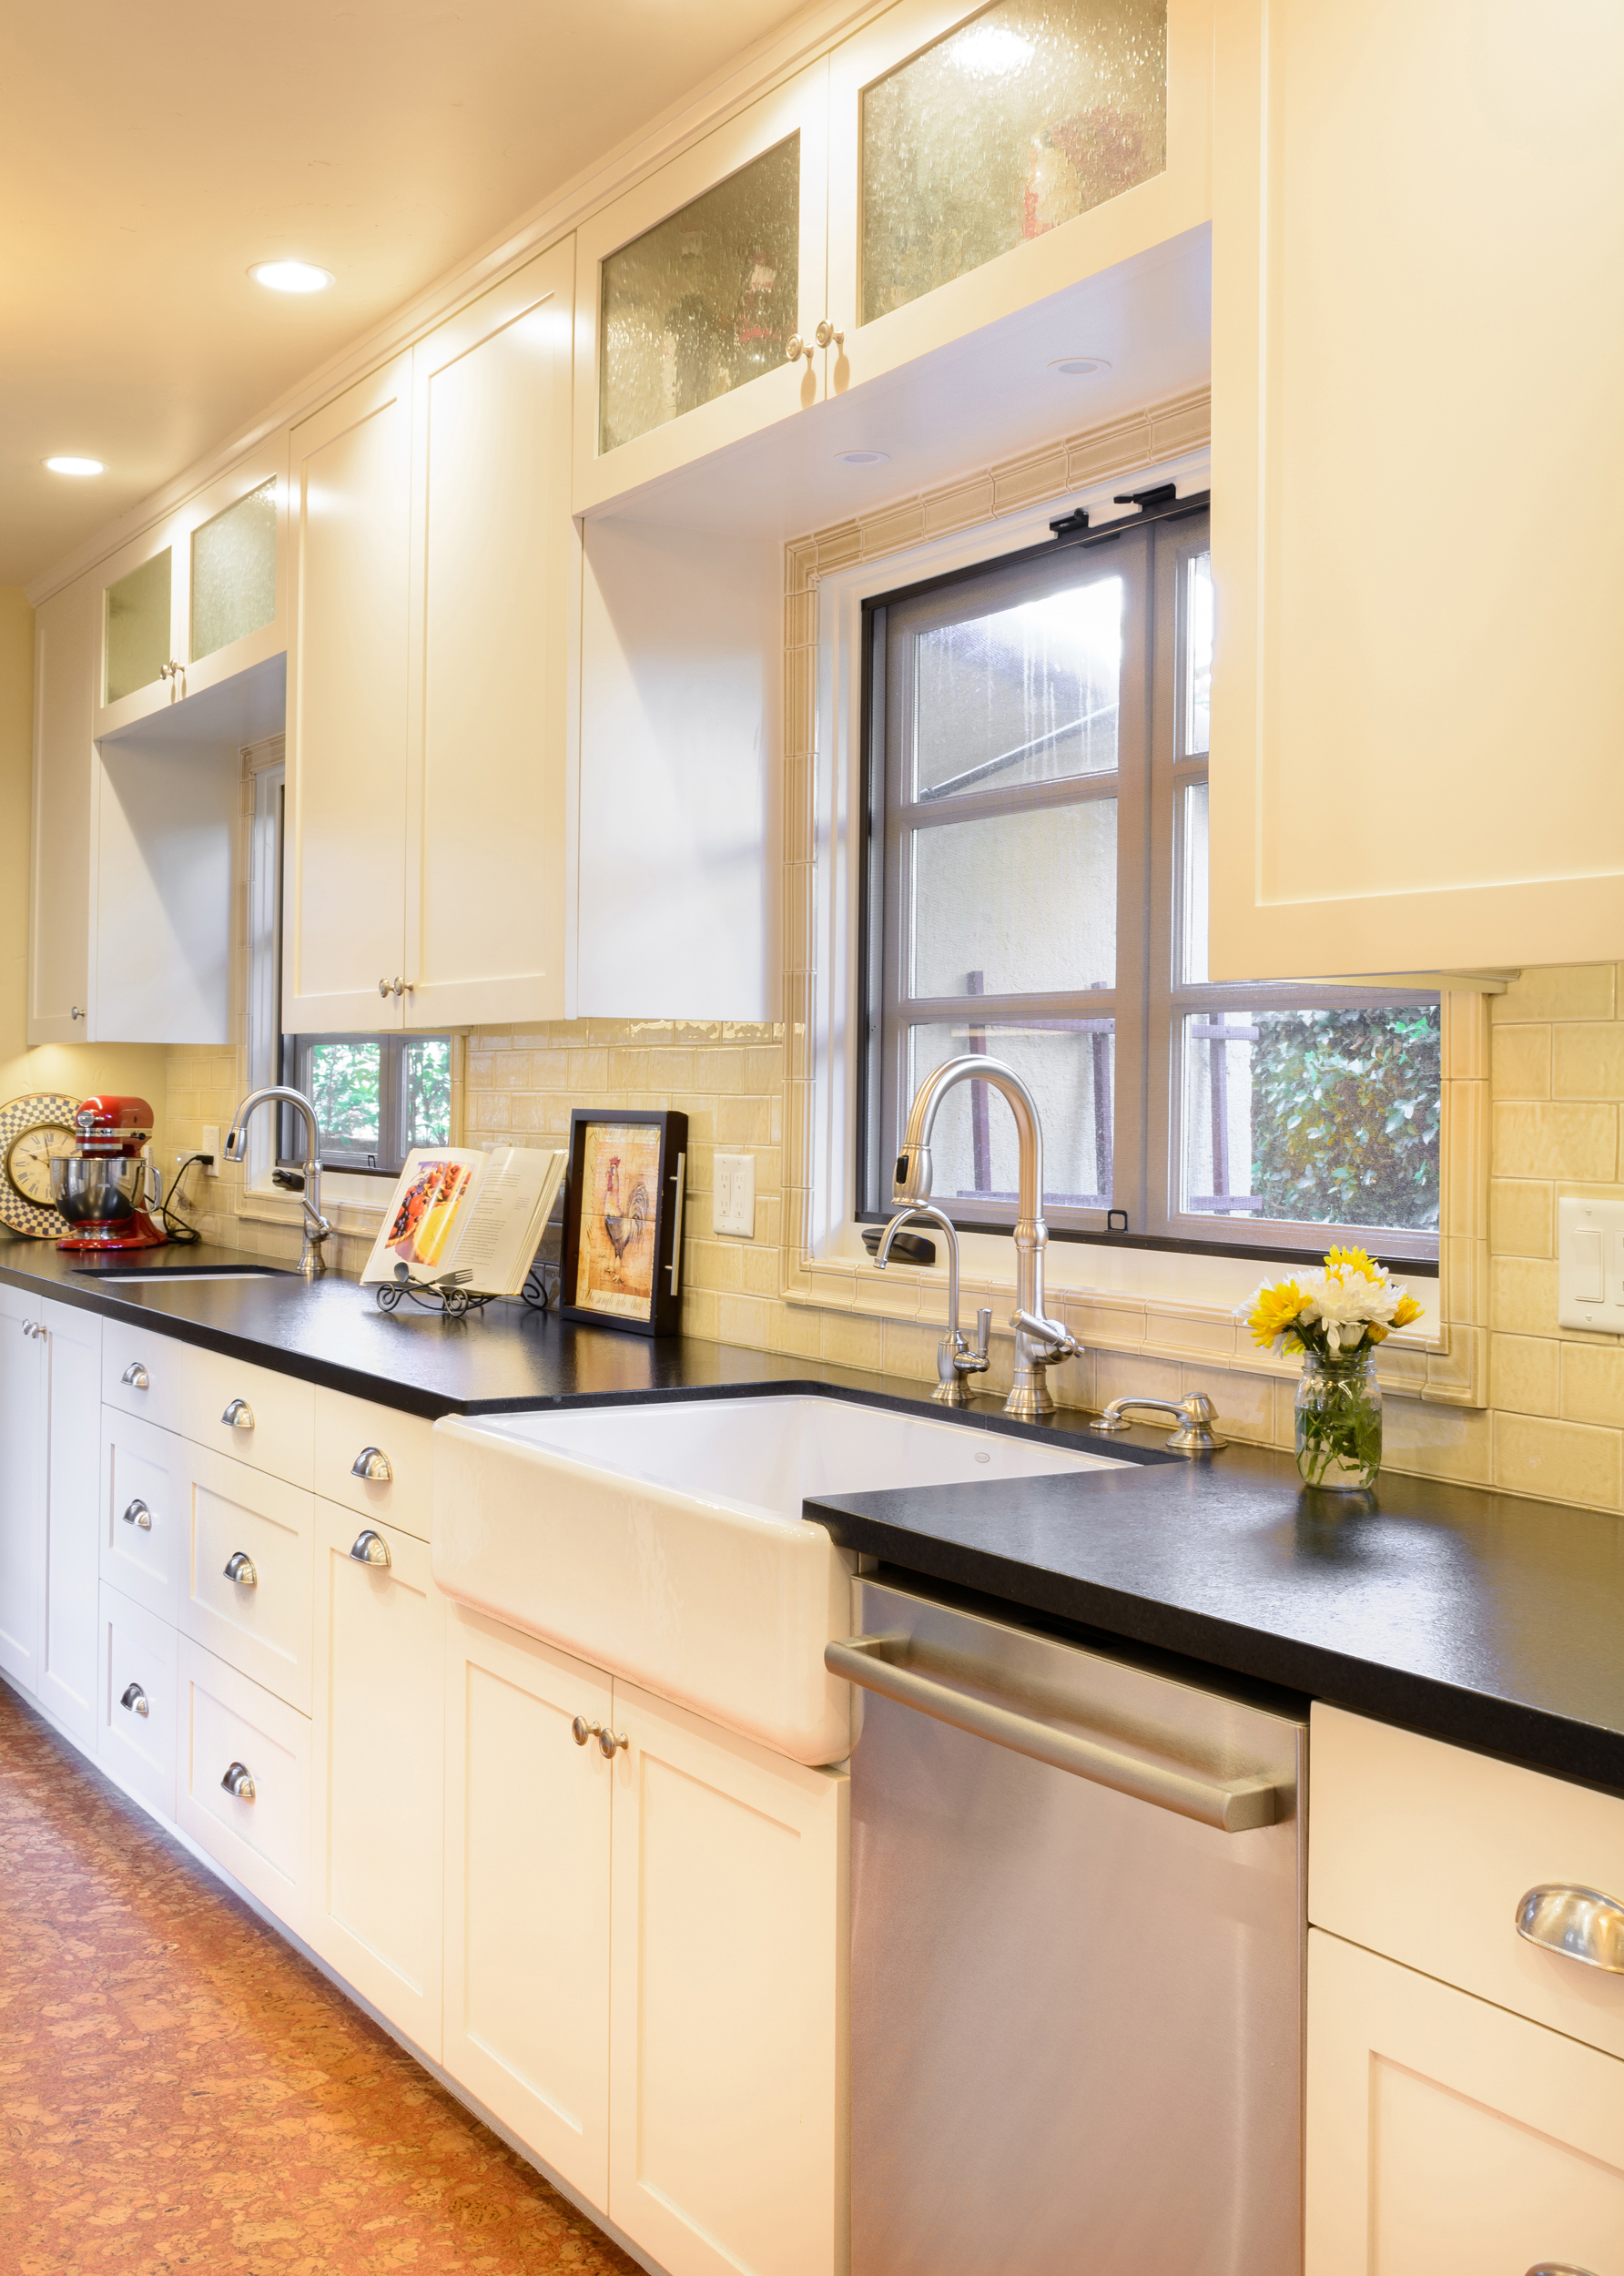 The farmhouse sink, also known as apron sink, constitute another key feature for this old world kitchen